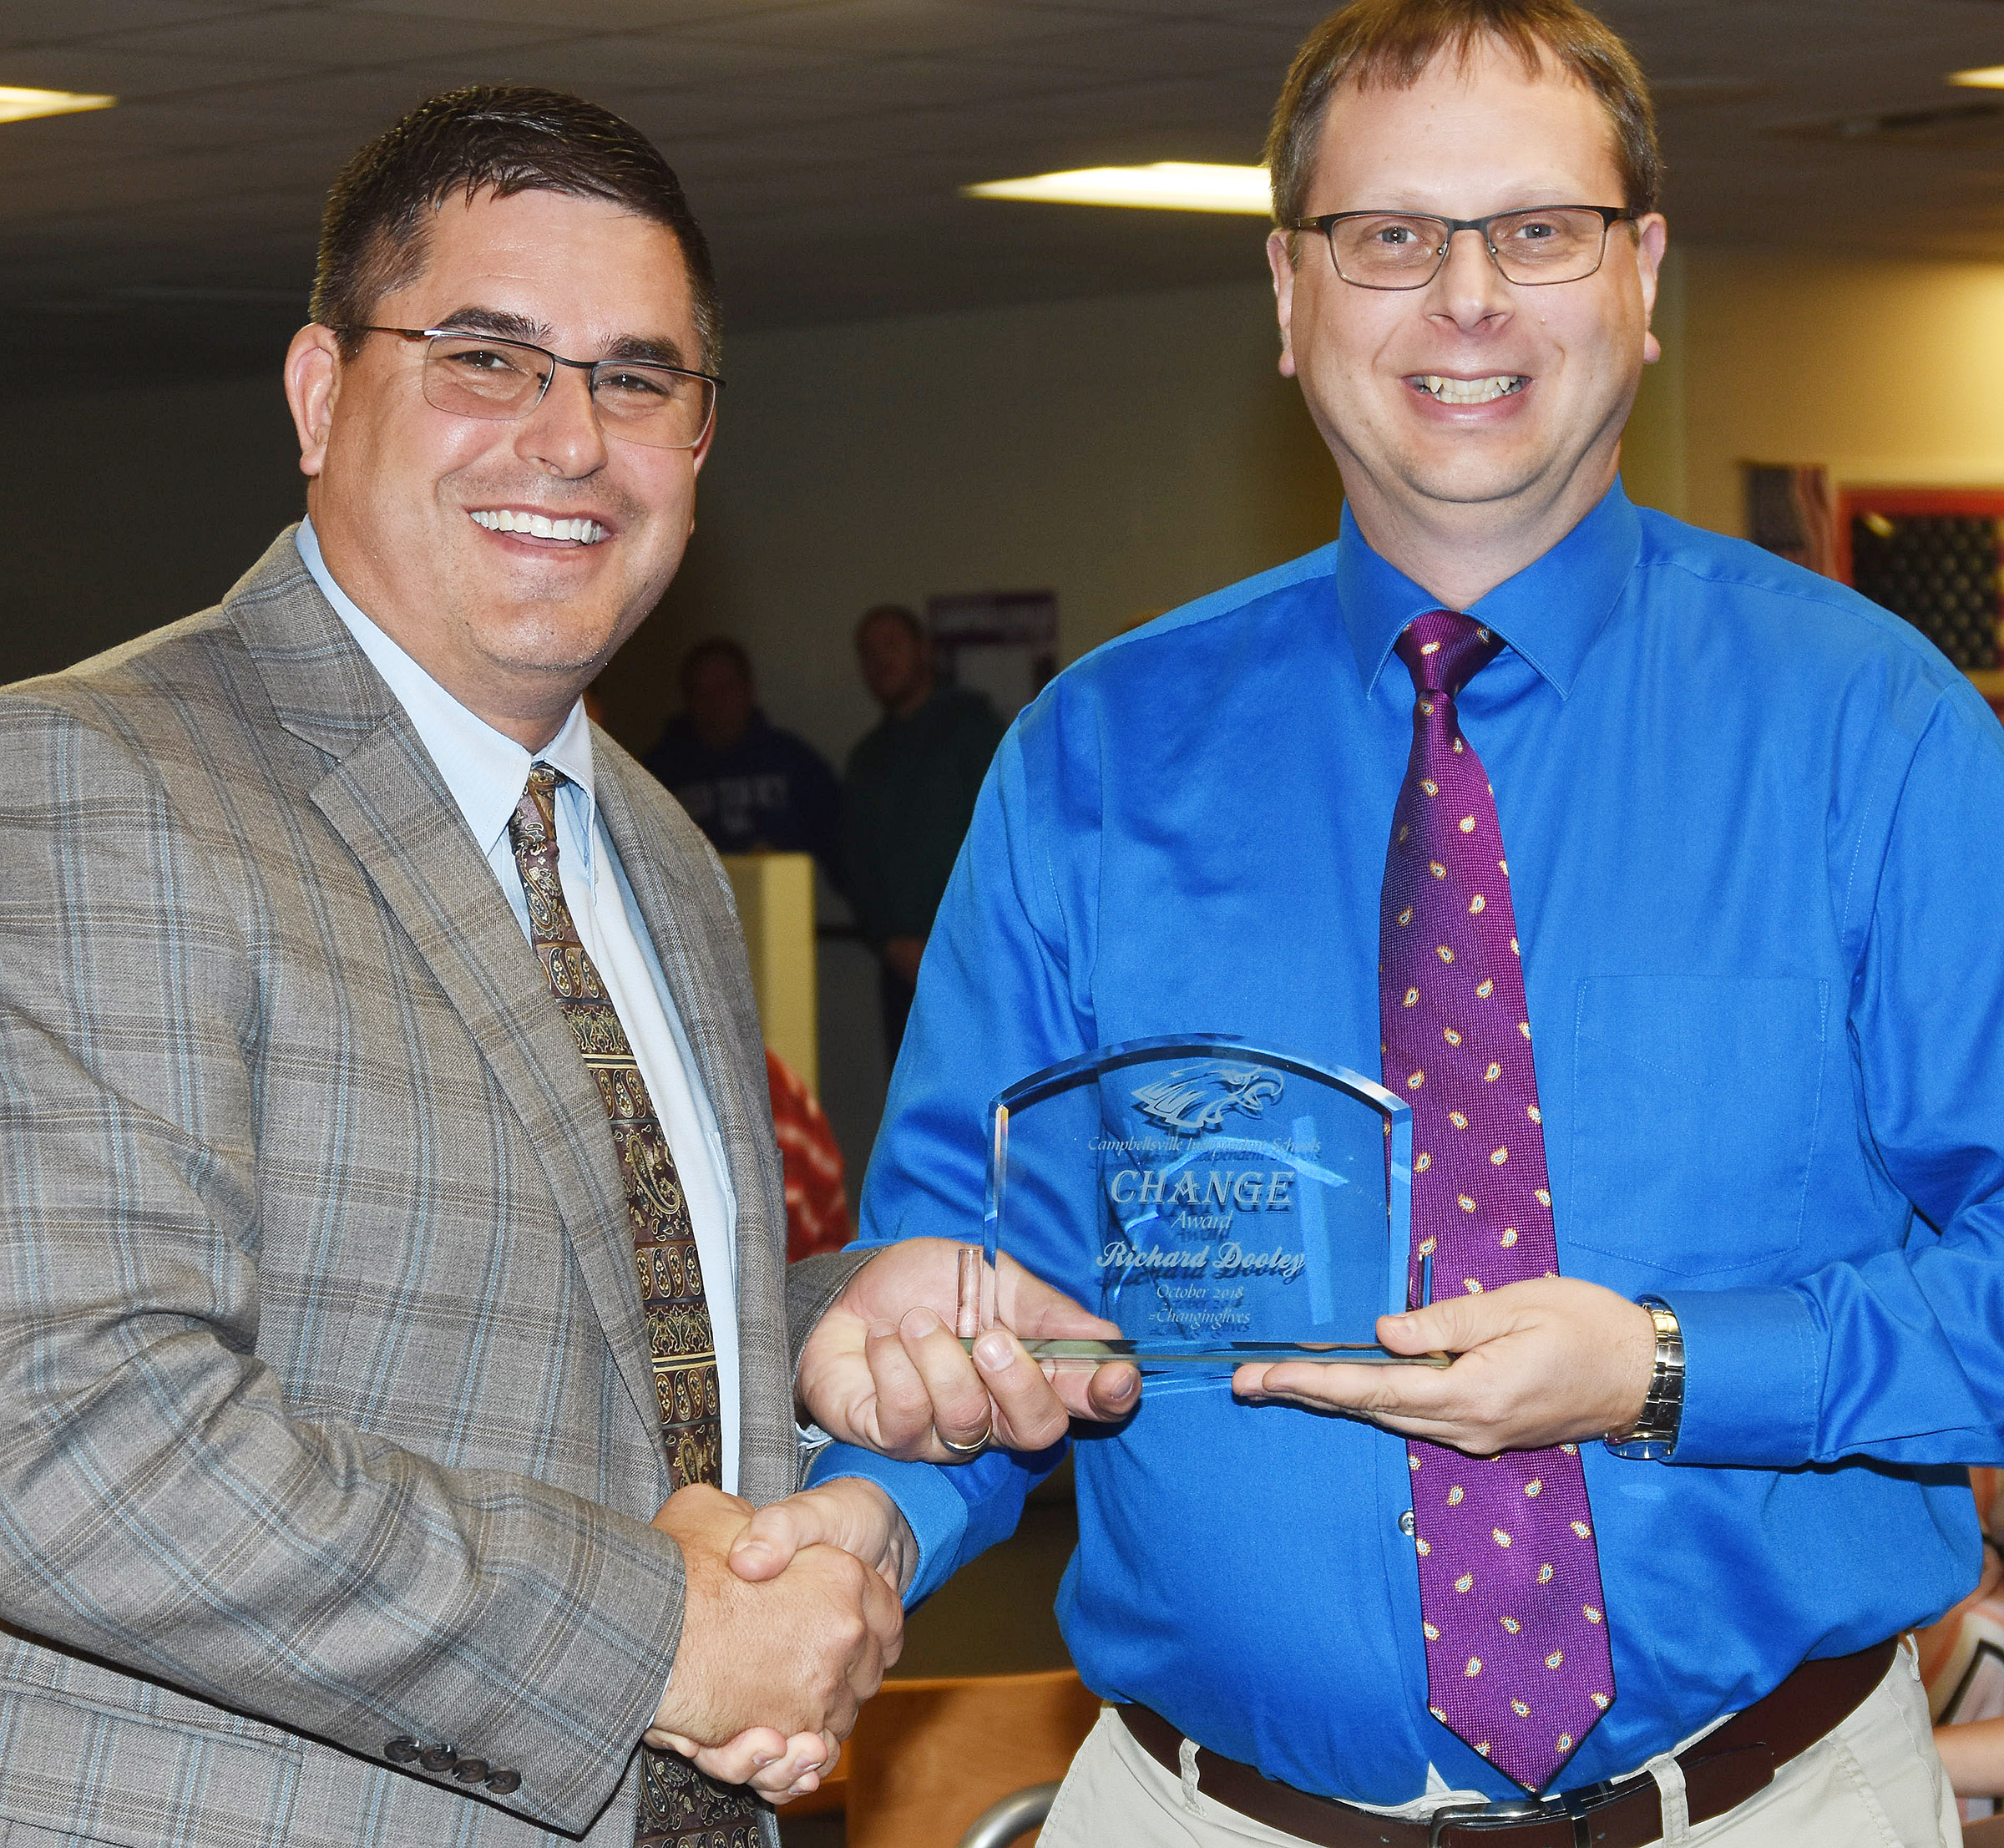 Campbellsville Independent Schools Superintendent Kirby Smith, at left, honors CHS guidance counselor Richard Dooley with the certified Change Award.